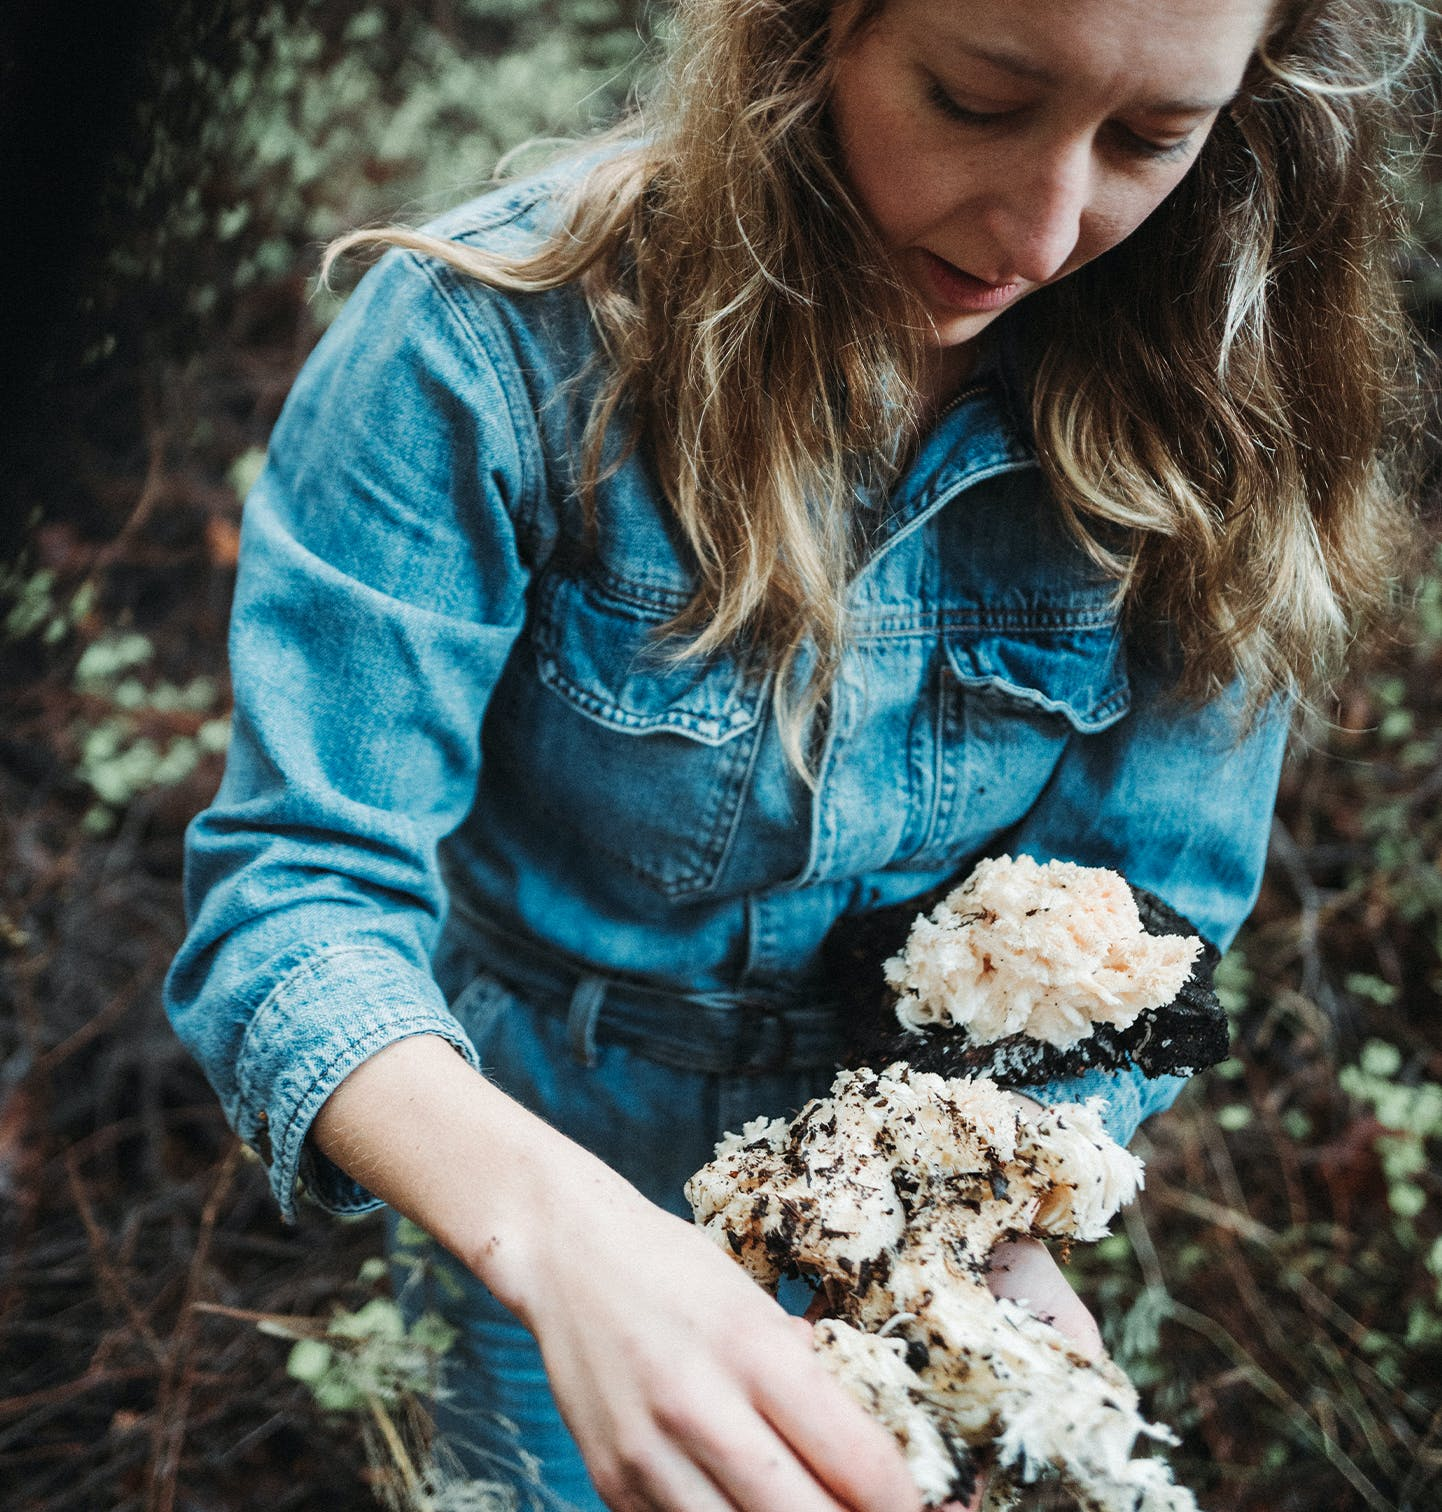 Danielle Picking Mushrooms